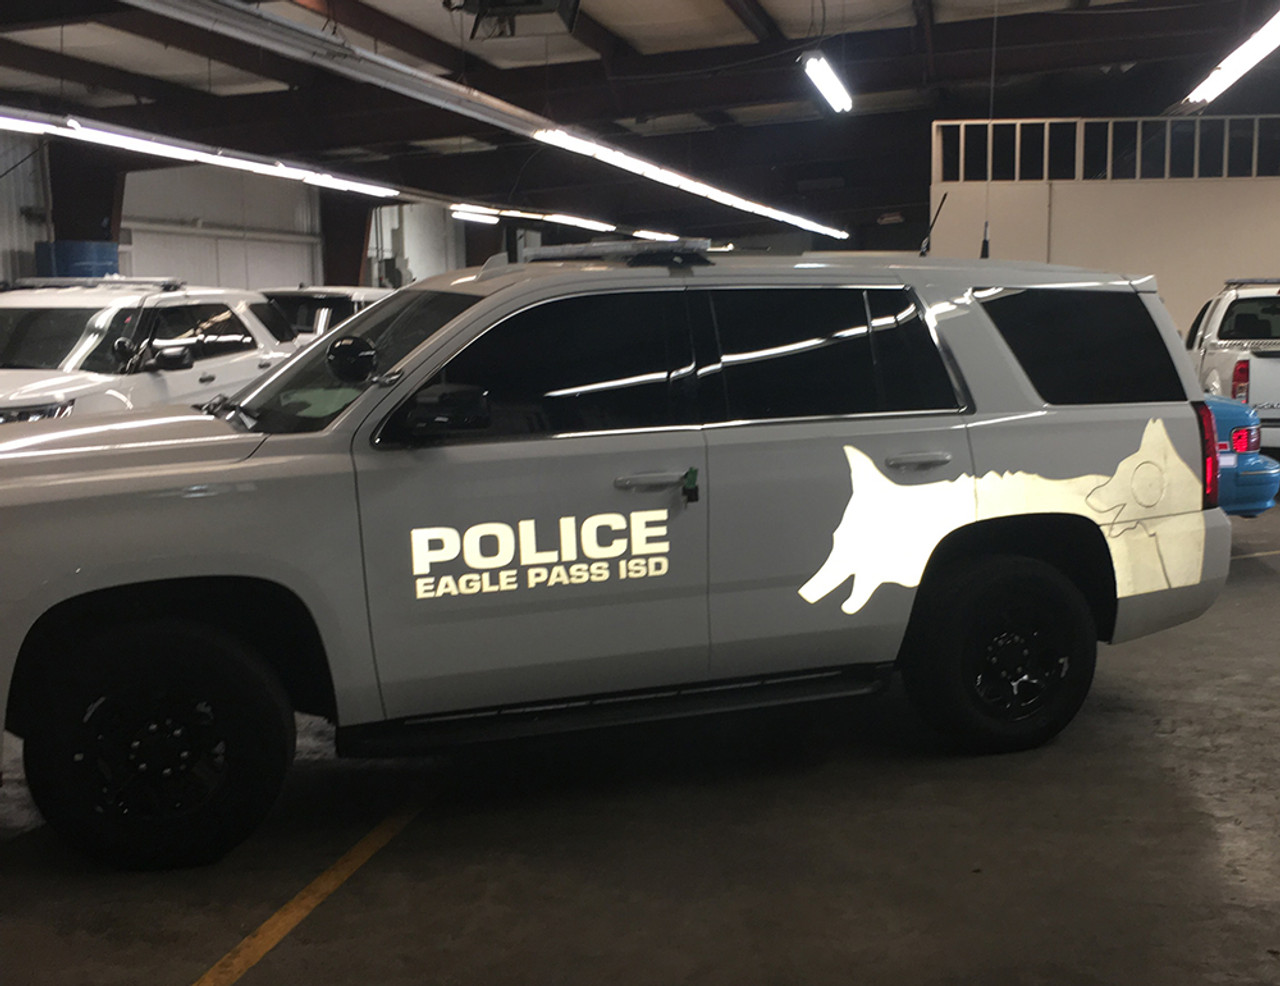 Police K-9 Vehicle Ghost Graphic Decals fit Cars, SUV's, Trucks, Vans